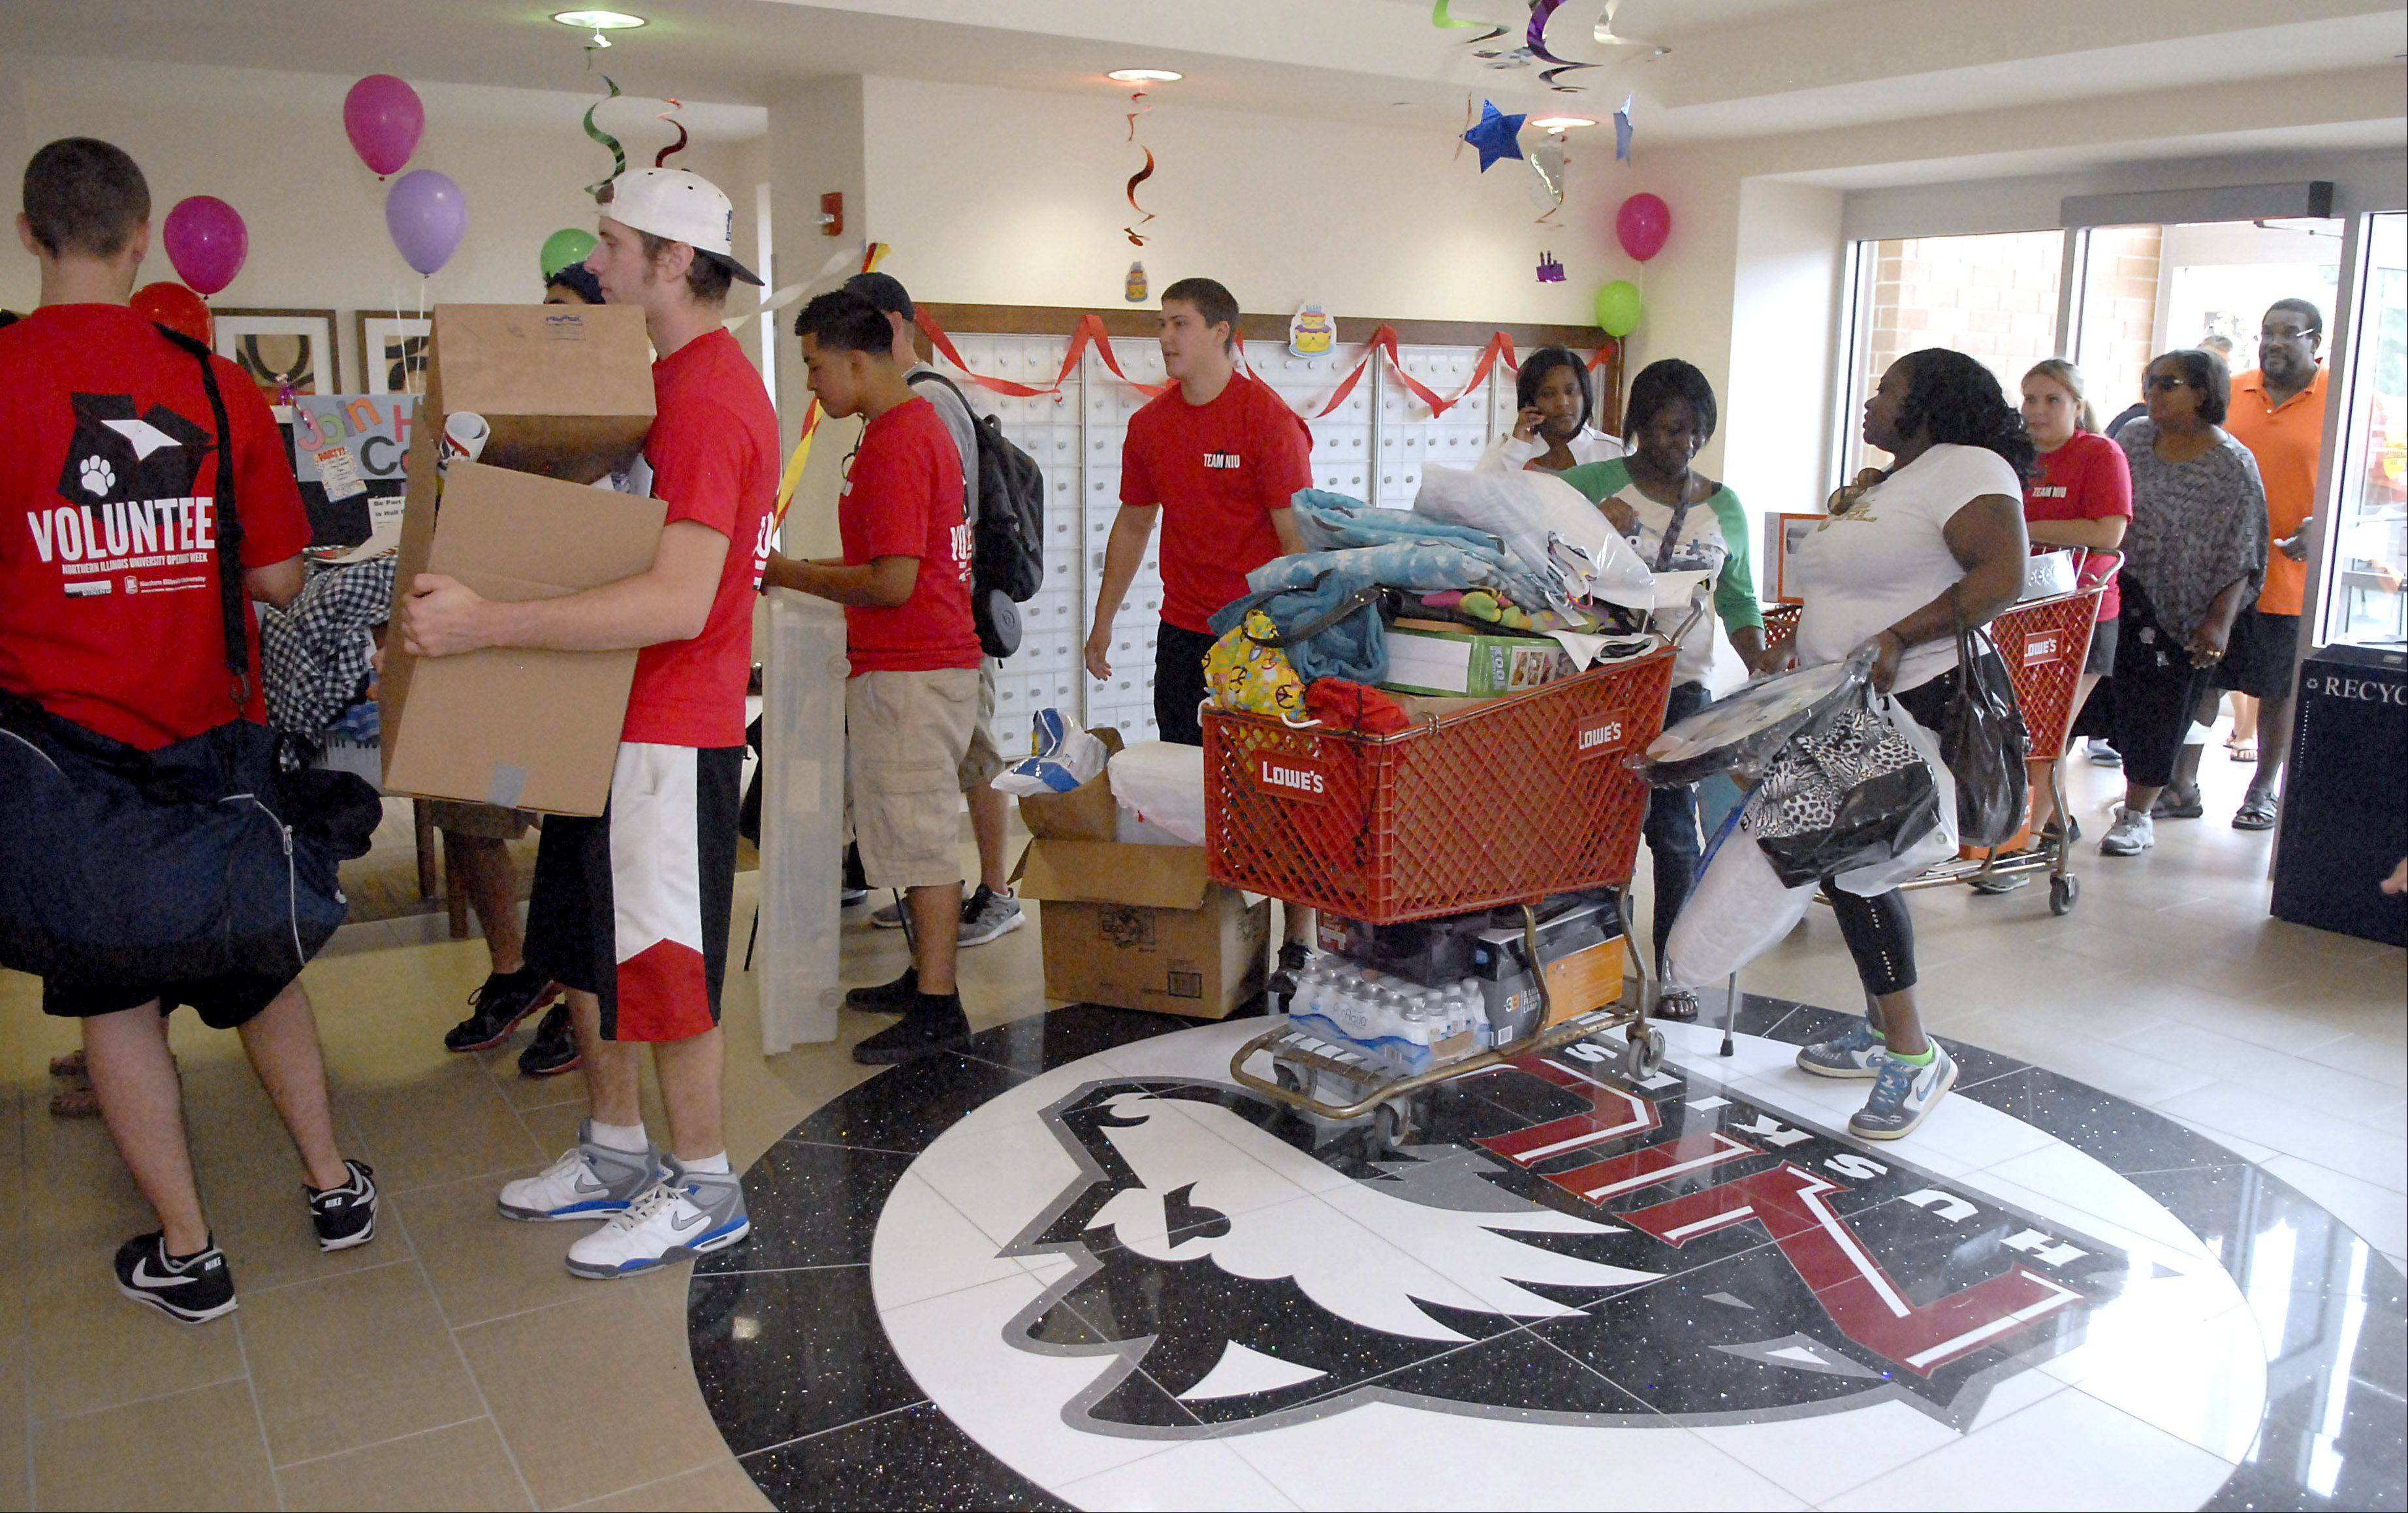 Volunteers help students on move-in day at New Residence Hall West at Northern Illinois University in DeKalb on Thursday, August 23.